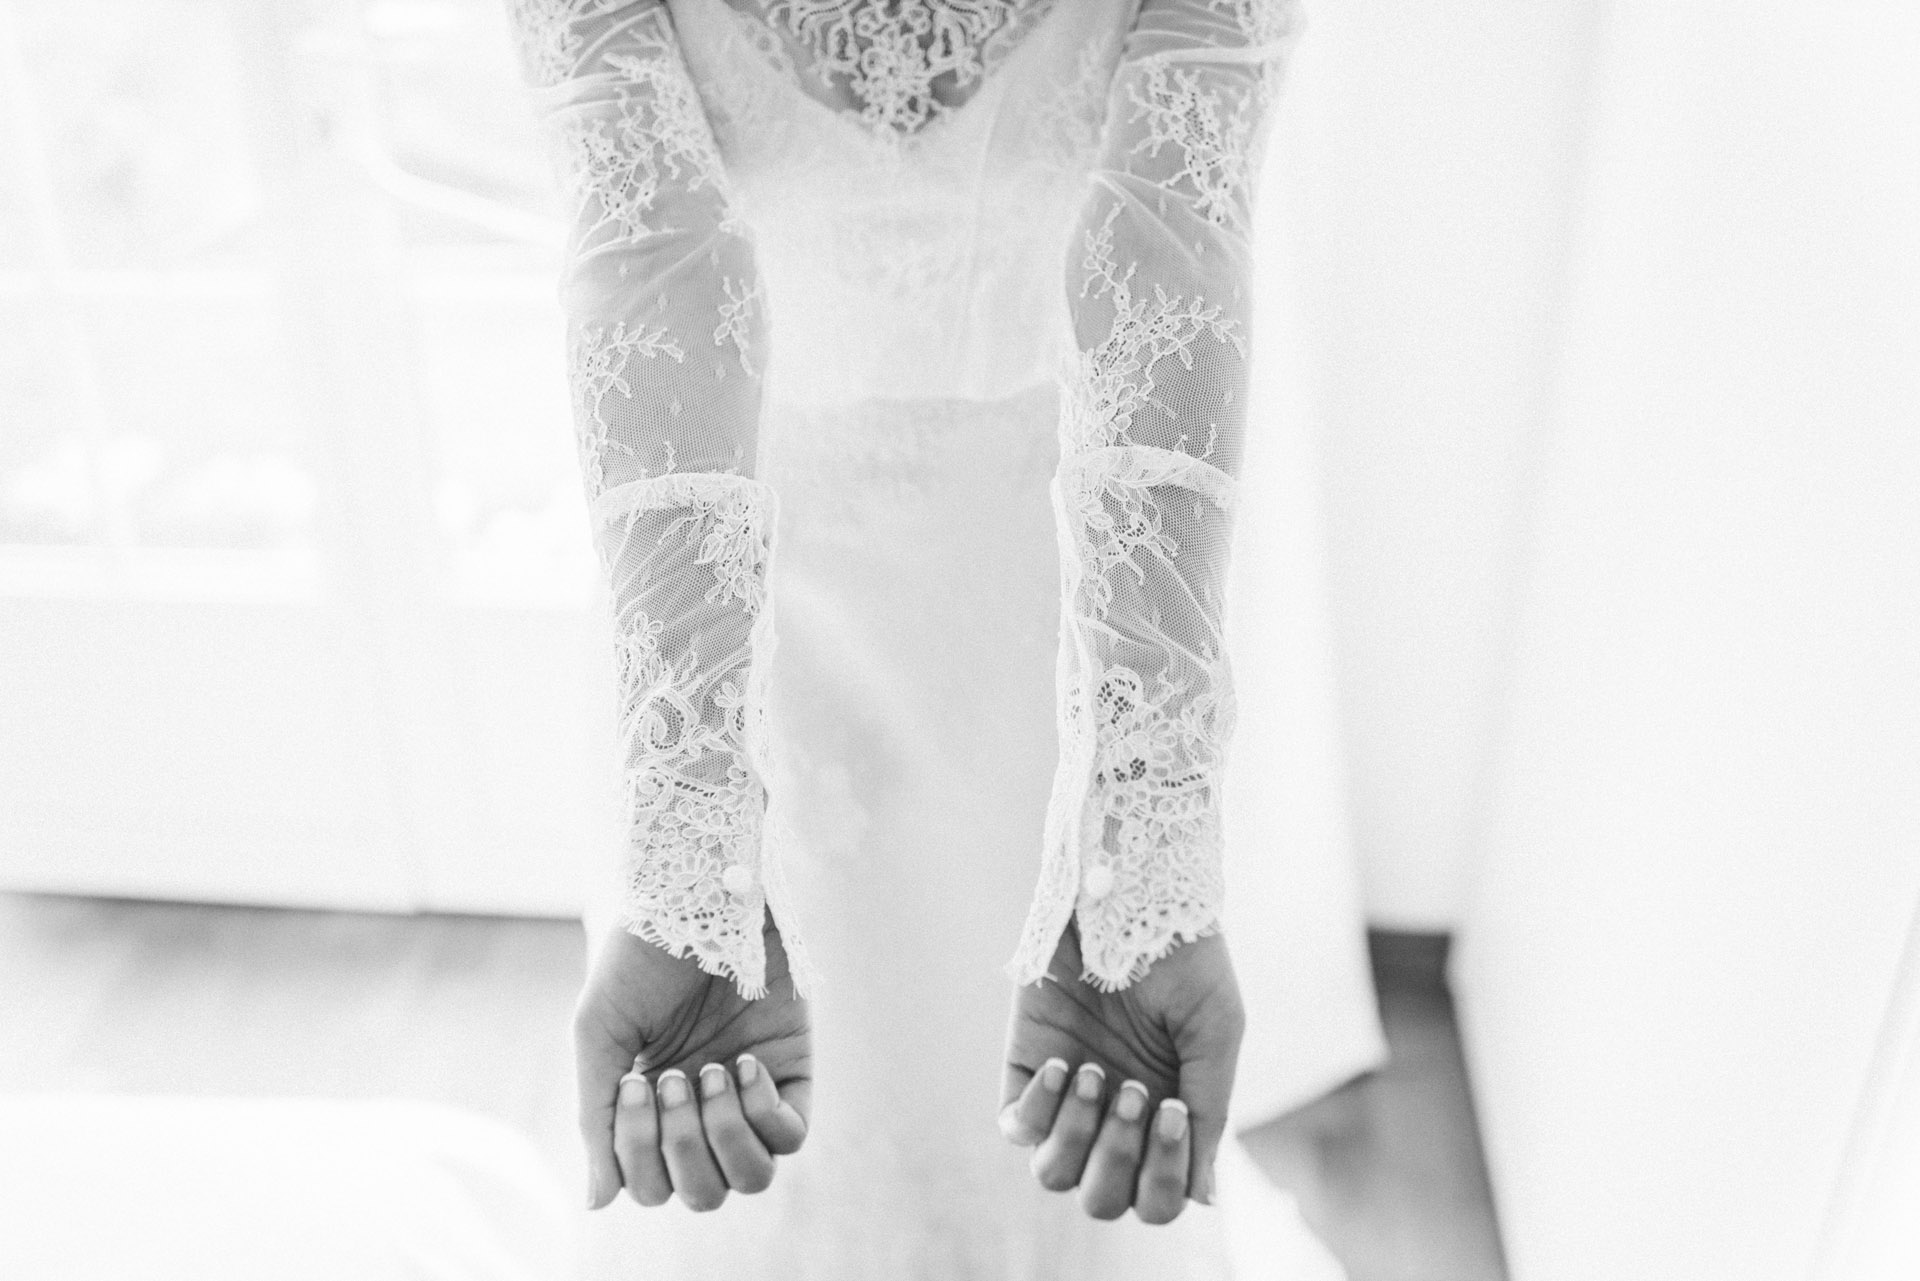 The arms in the bride's dress